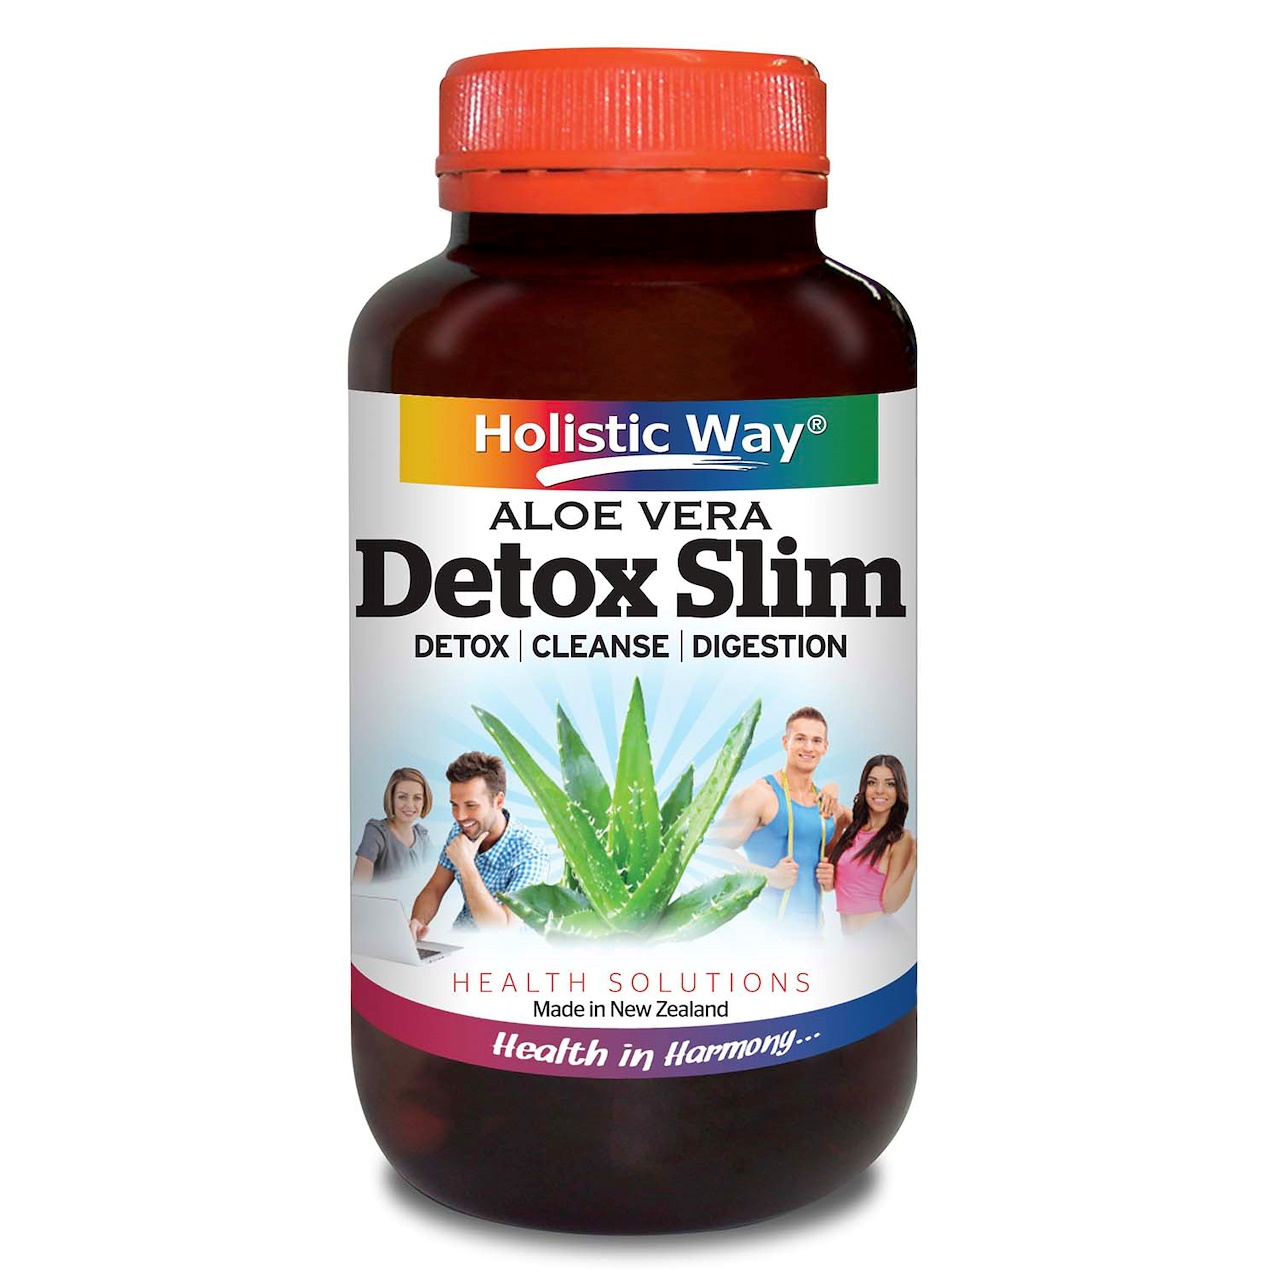 Every Need Want Day Detoxslim Holistic Way Detox Slim 60 Vegetarian Capsules